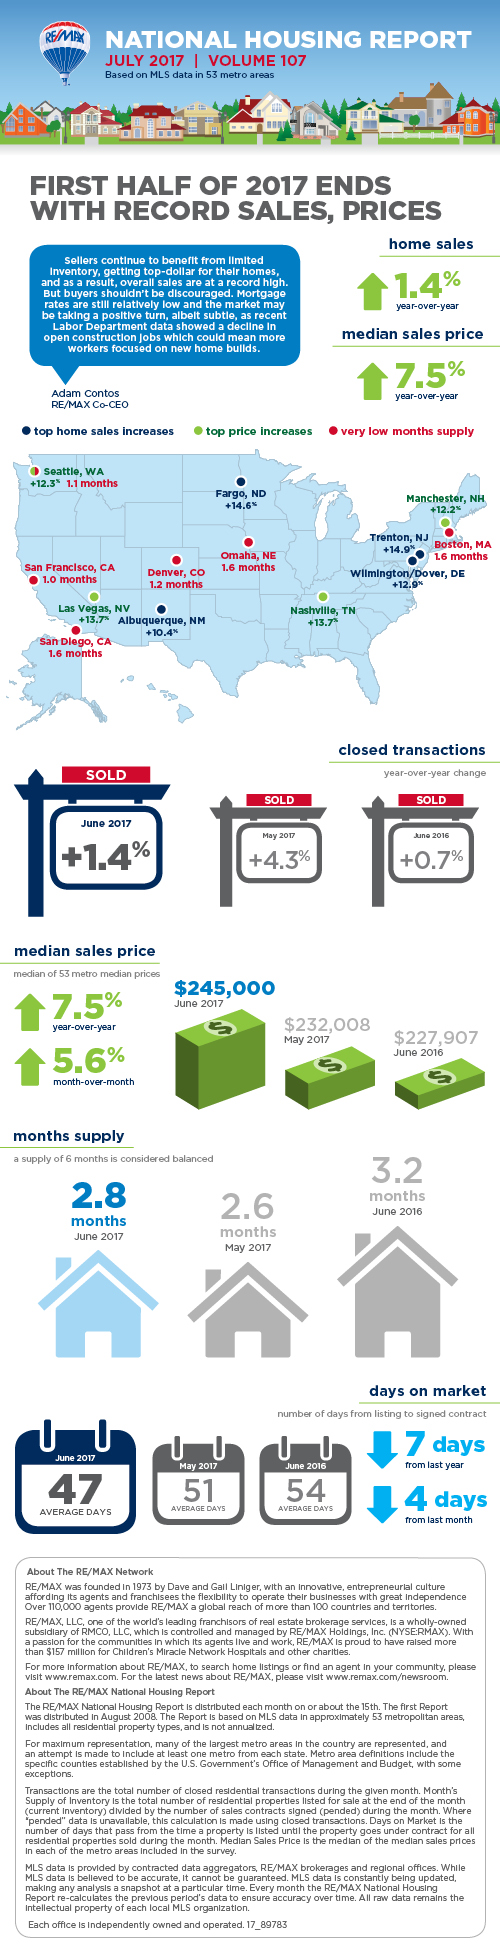 RE/MAX National Housing Report: July 2017